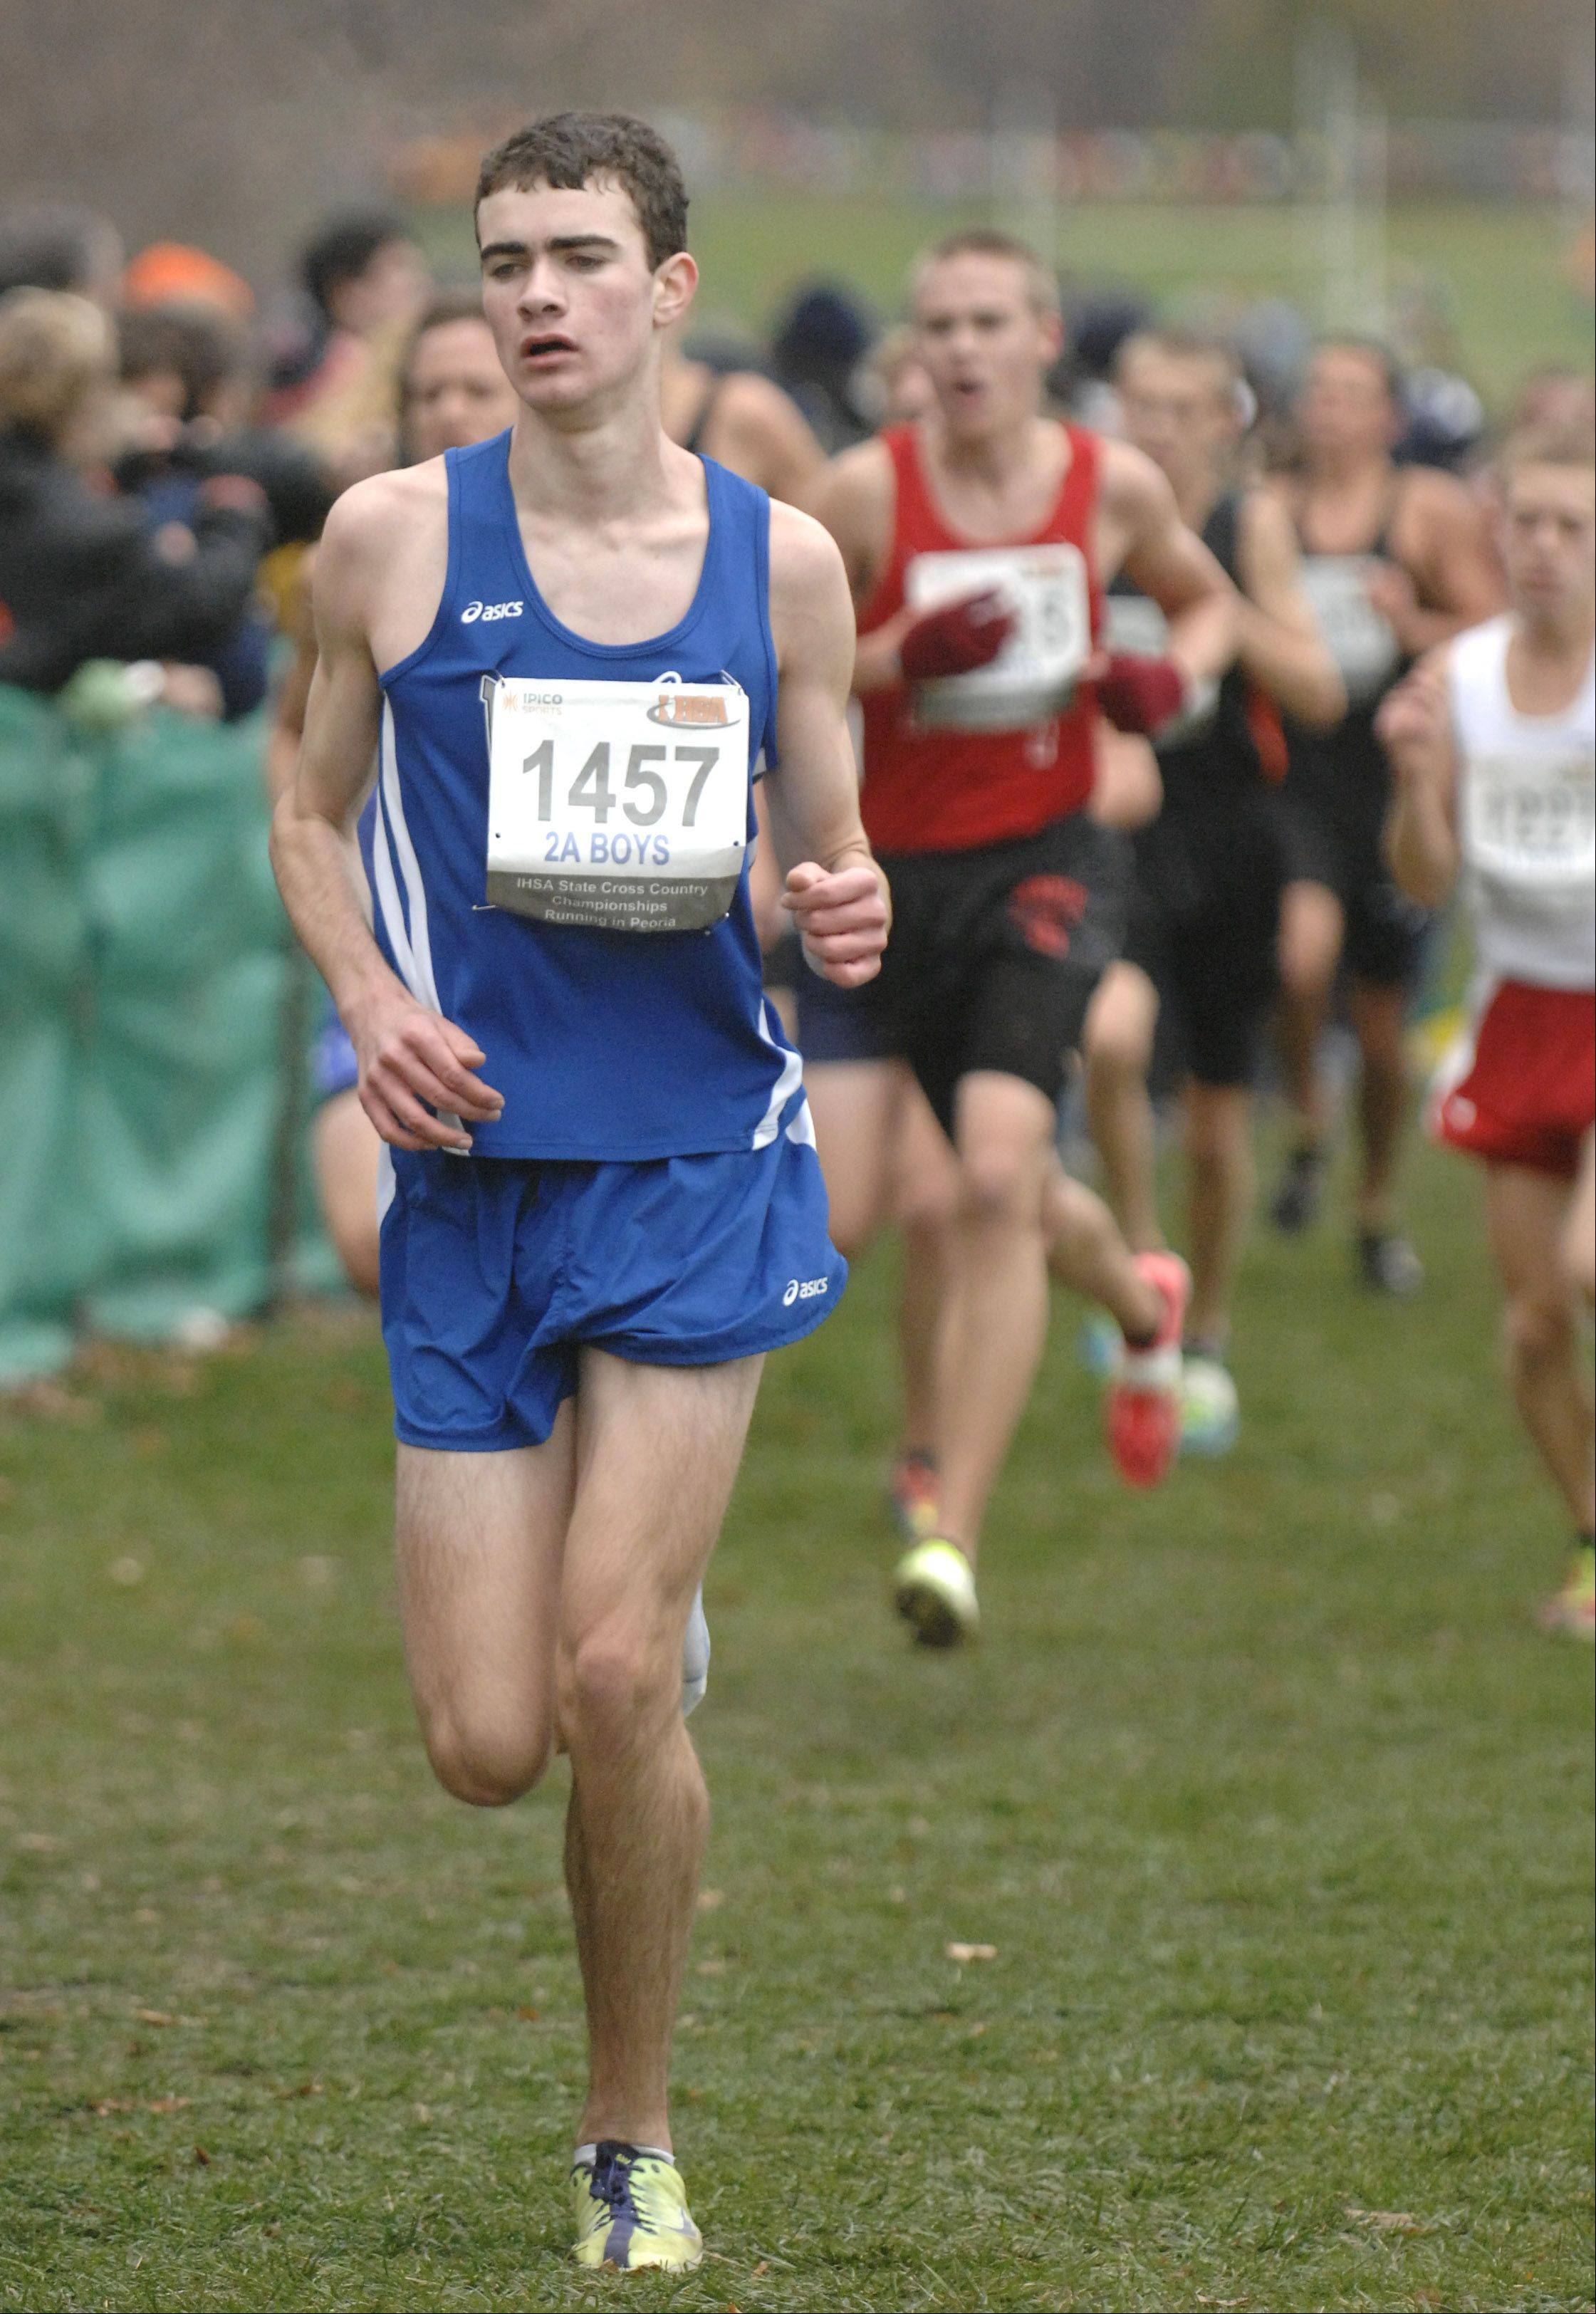 Vernon Hills' Ben Mohrdieck, here competing in last year's state meet, has much more company this time around as the Cougars qualified as a team and will run together in Saturday's 2A title race.